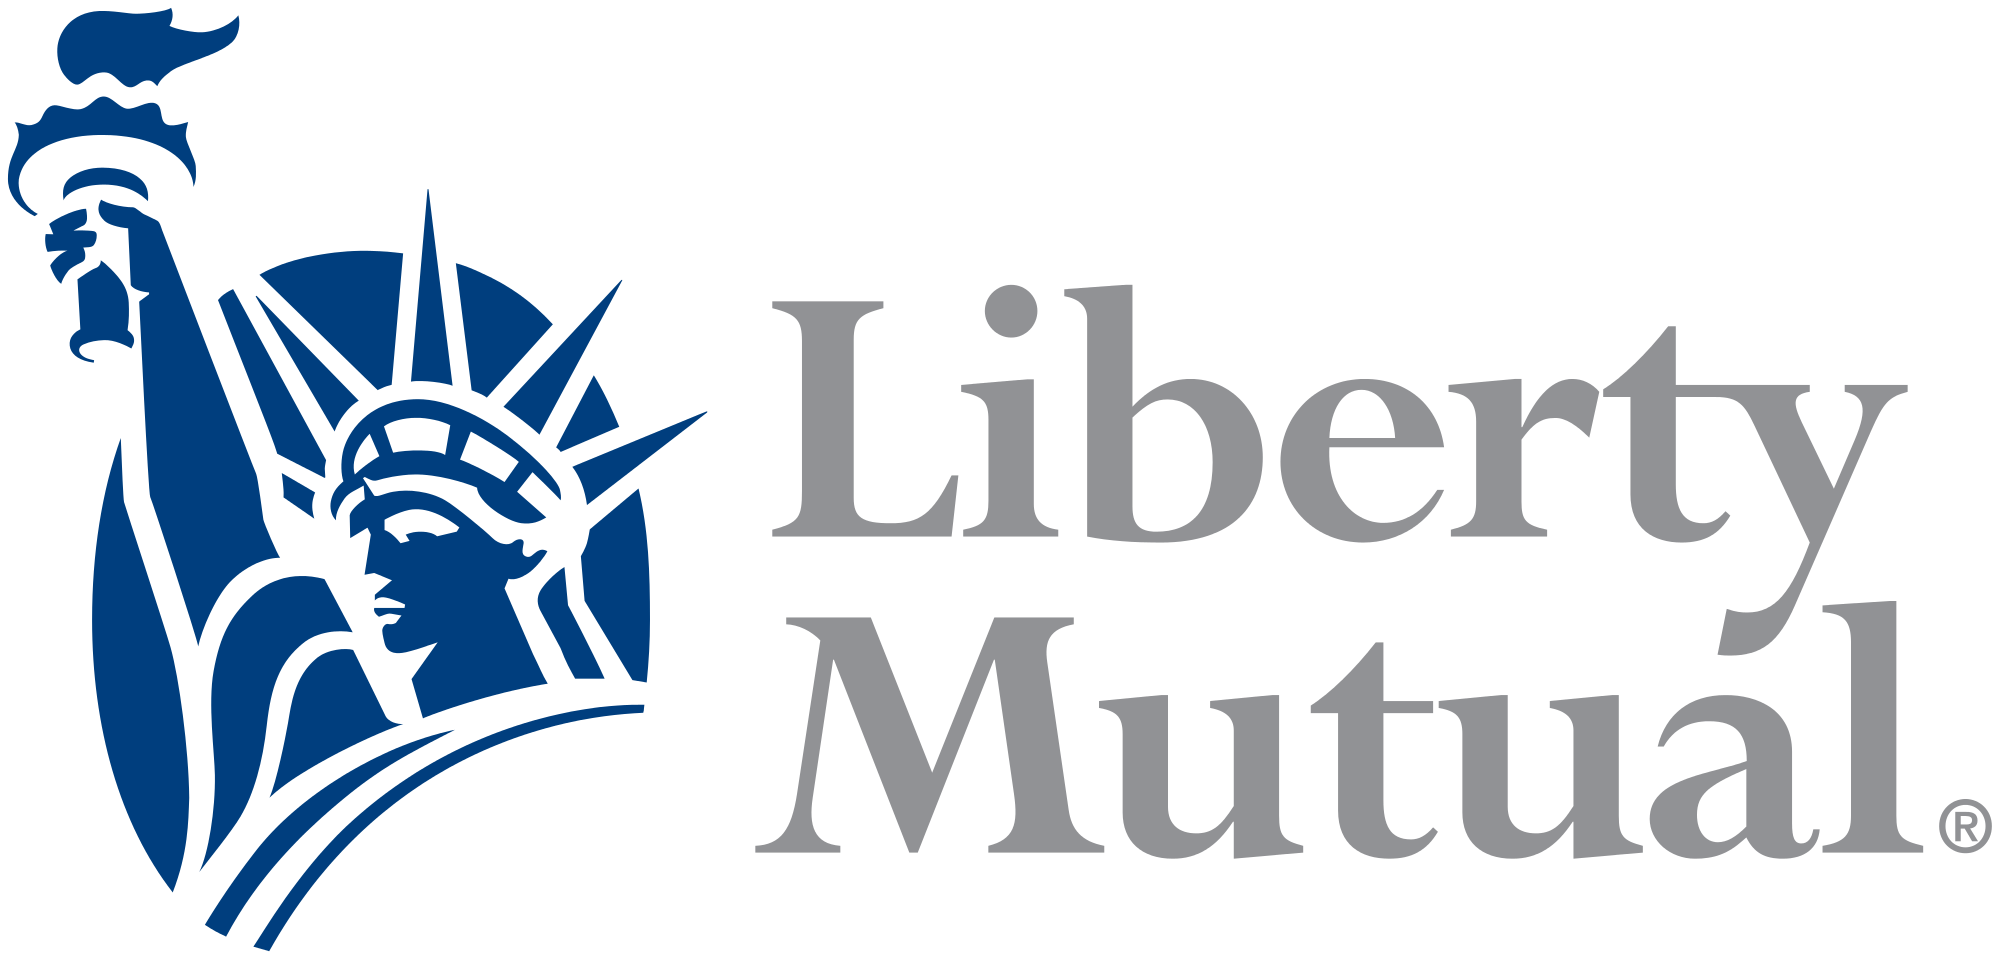 Liberty Mutual Quote Endearing Liberty Mutual Insurance Logos  Google Search  Insurance . Decorating Inspiration